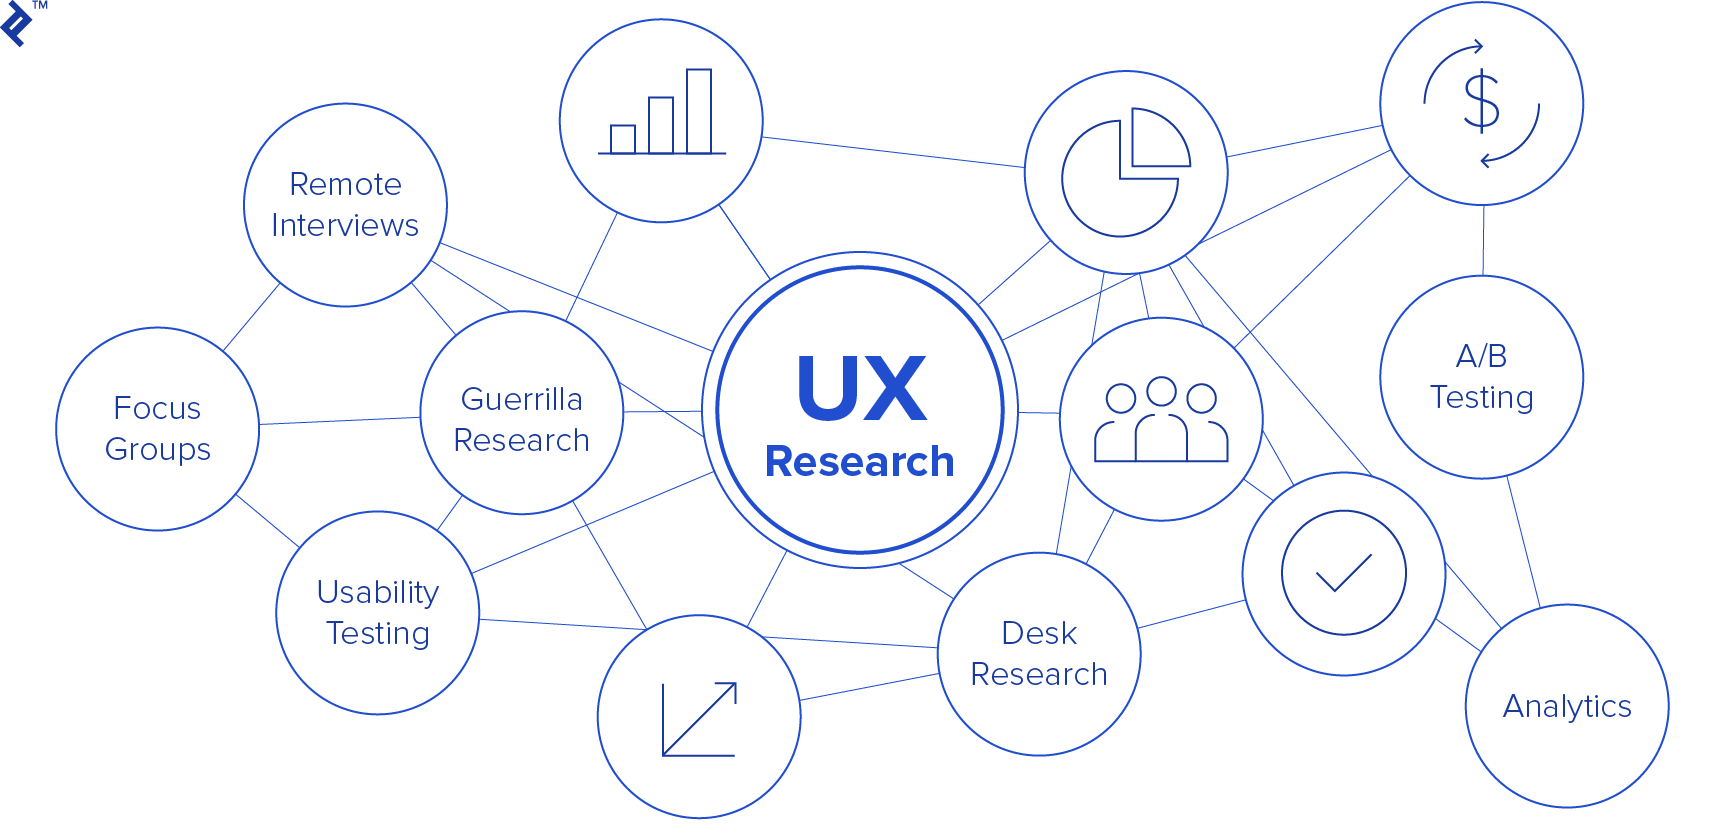 there are many low-cost UX research options available